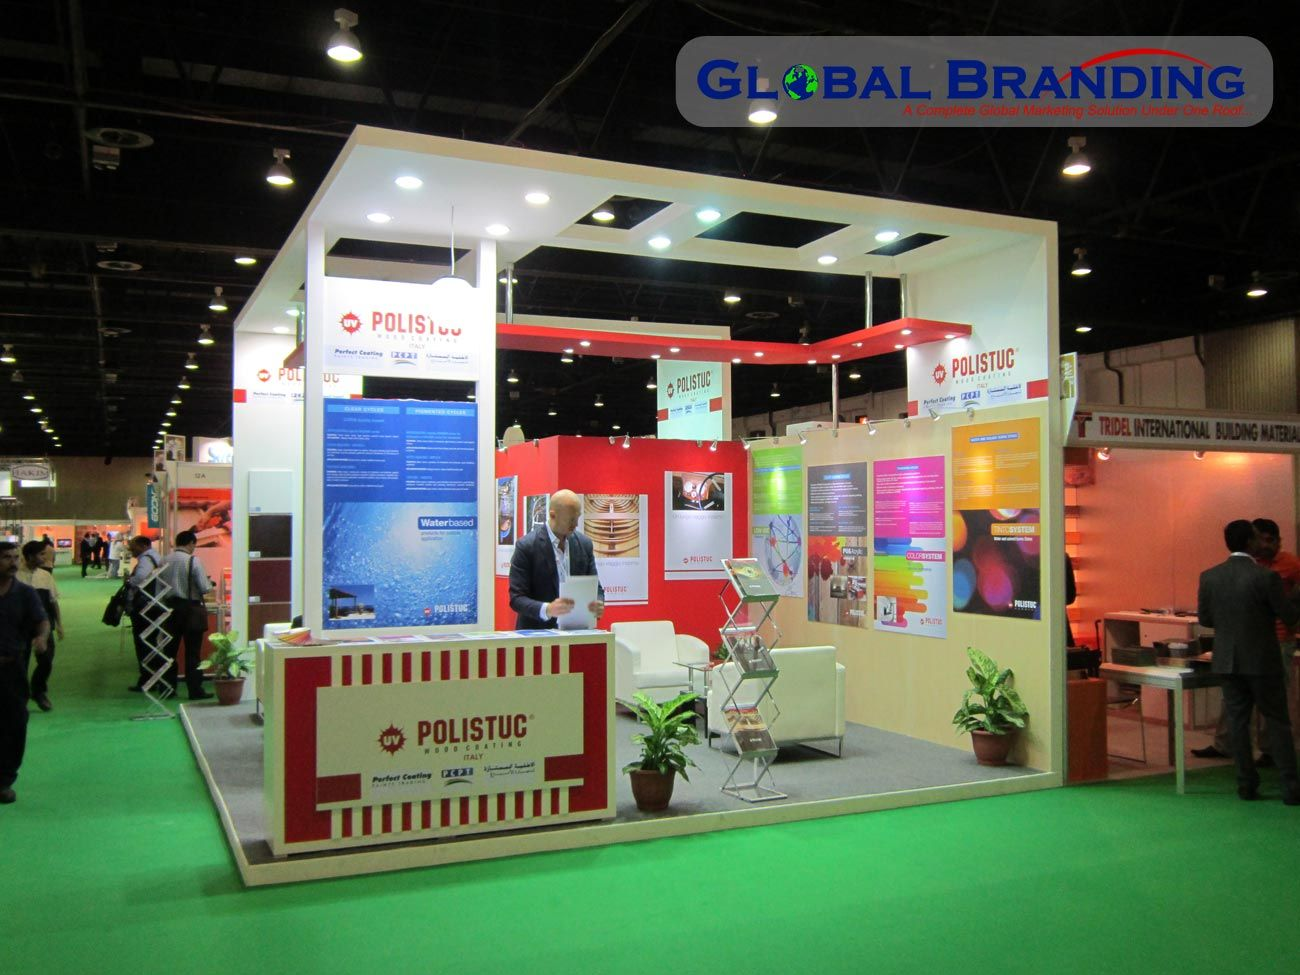 Dreamz Unlimited Llc Exhibition Stand Builders : Global branding